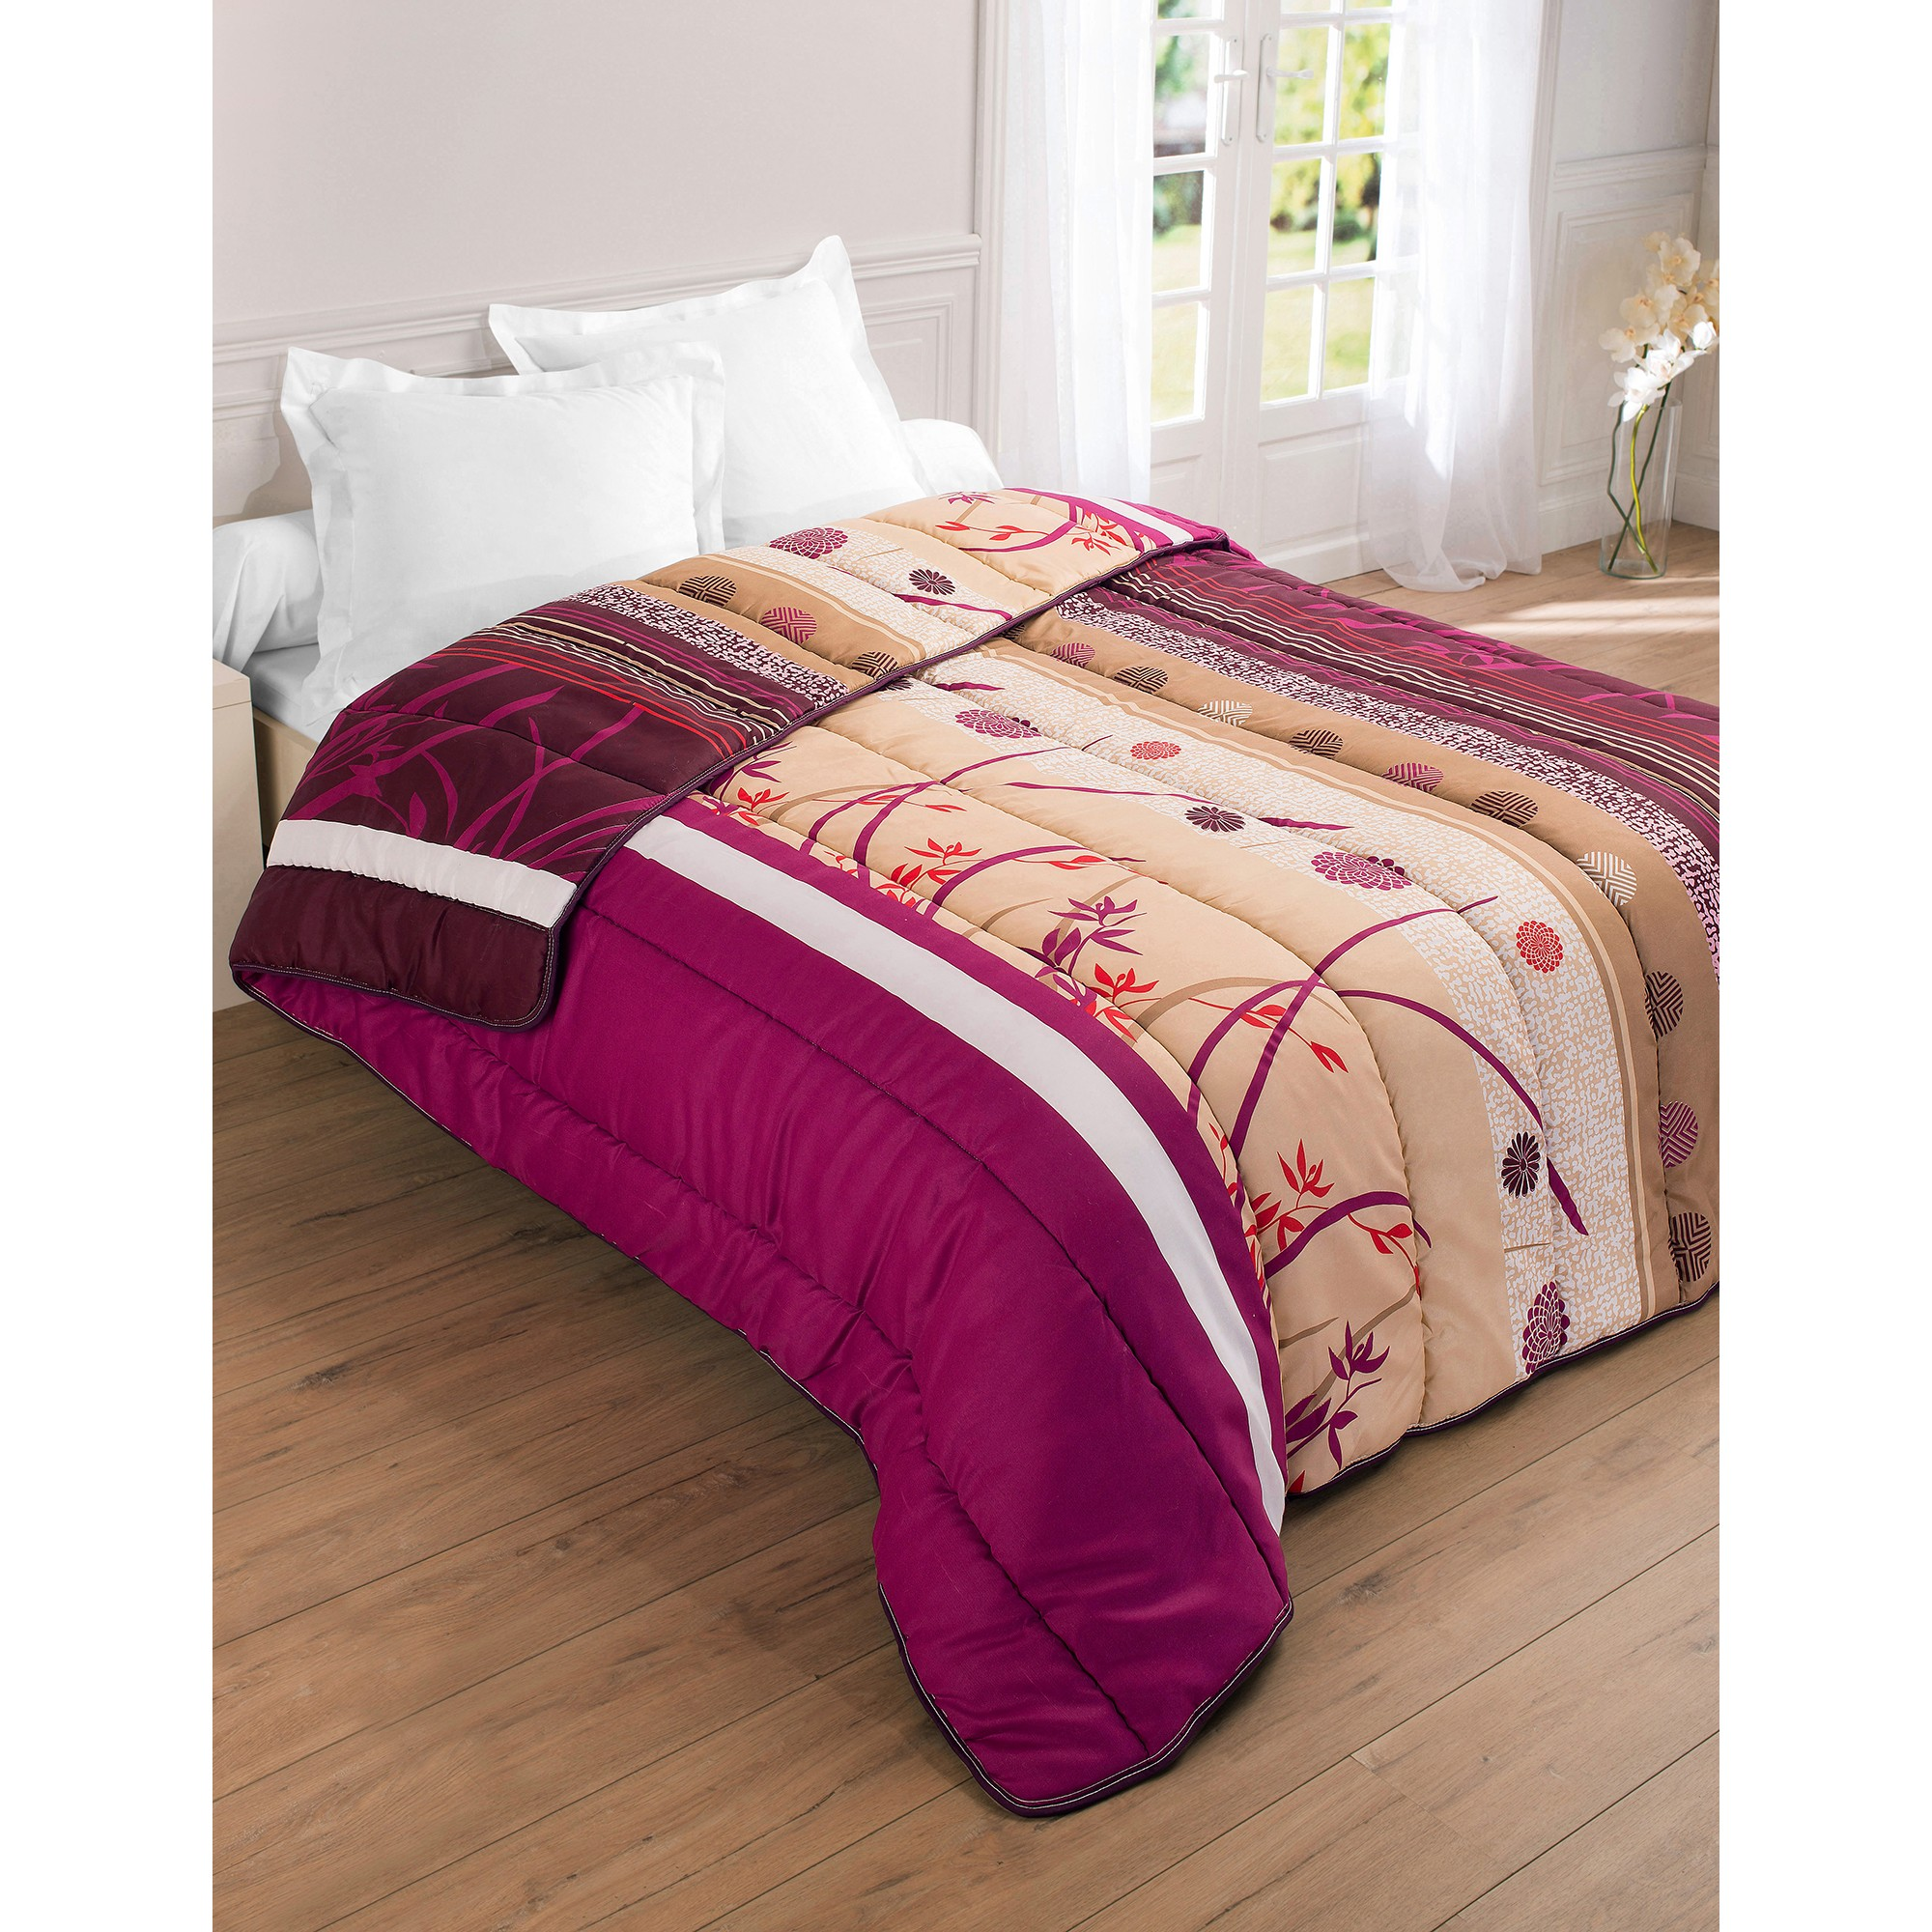 couette microfibre imprim e floral 400g m2 blancheporte. Black Bedroom Furniture Sets. Home Design Ideas